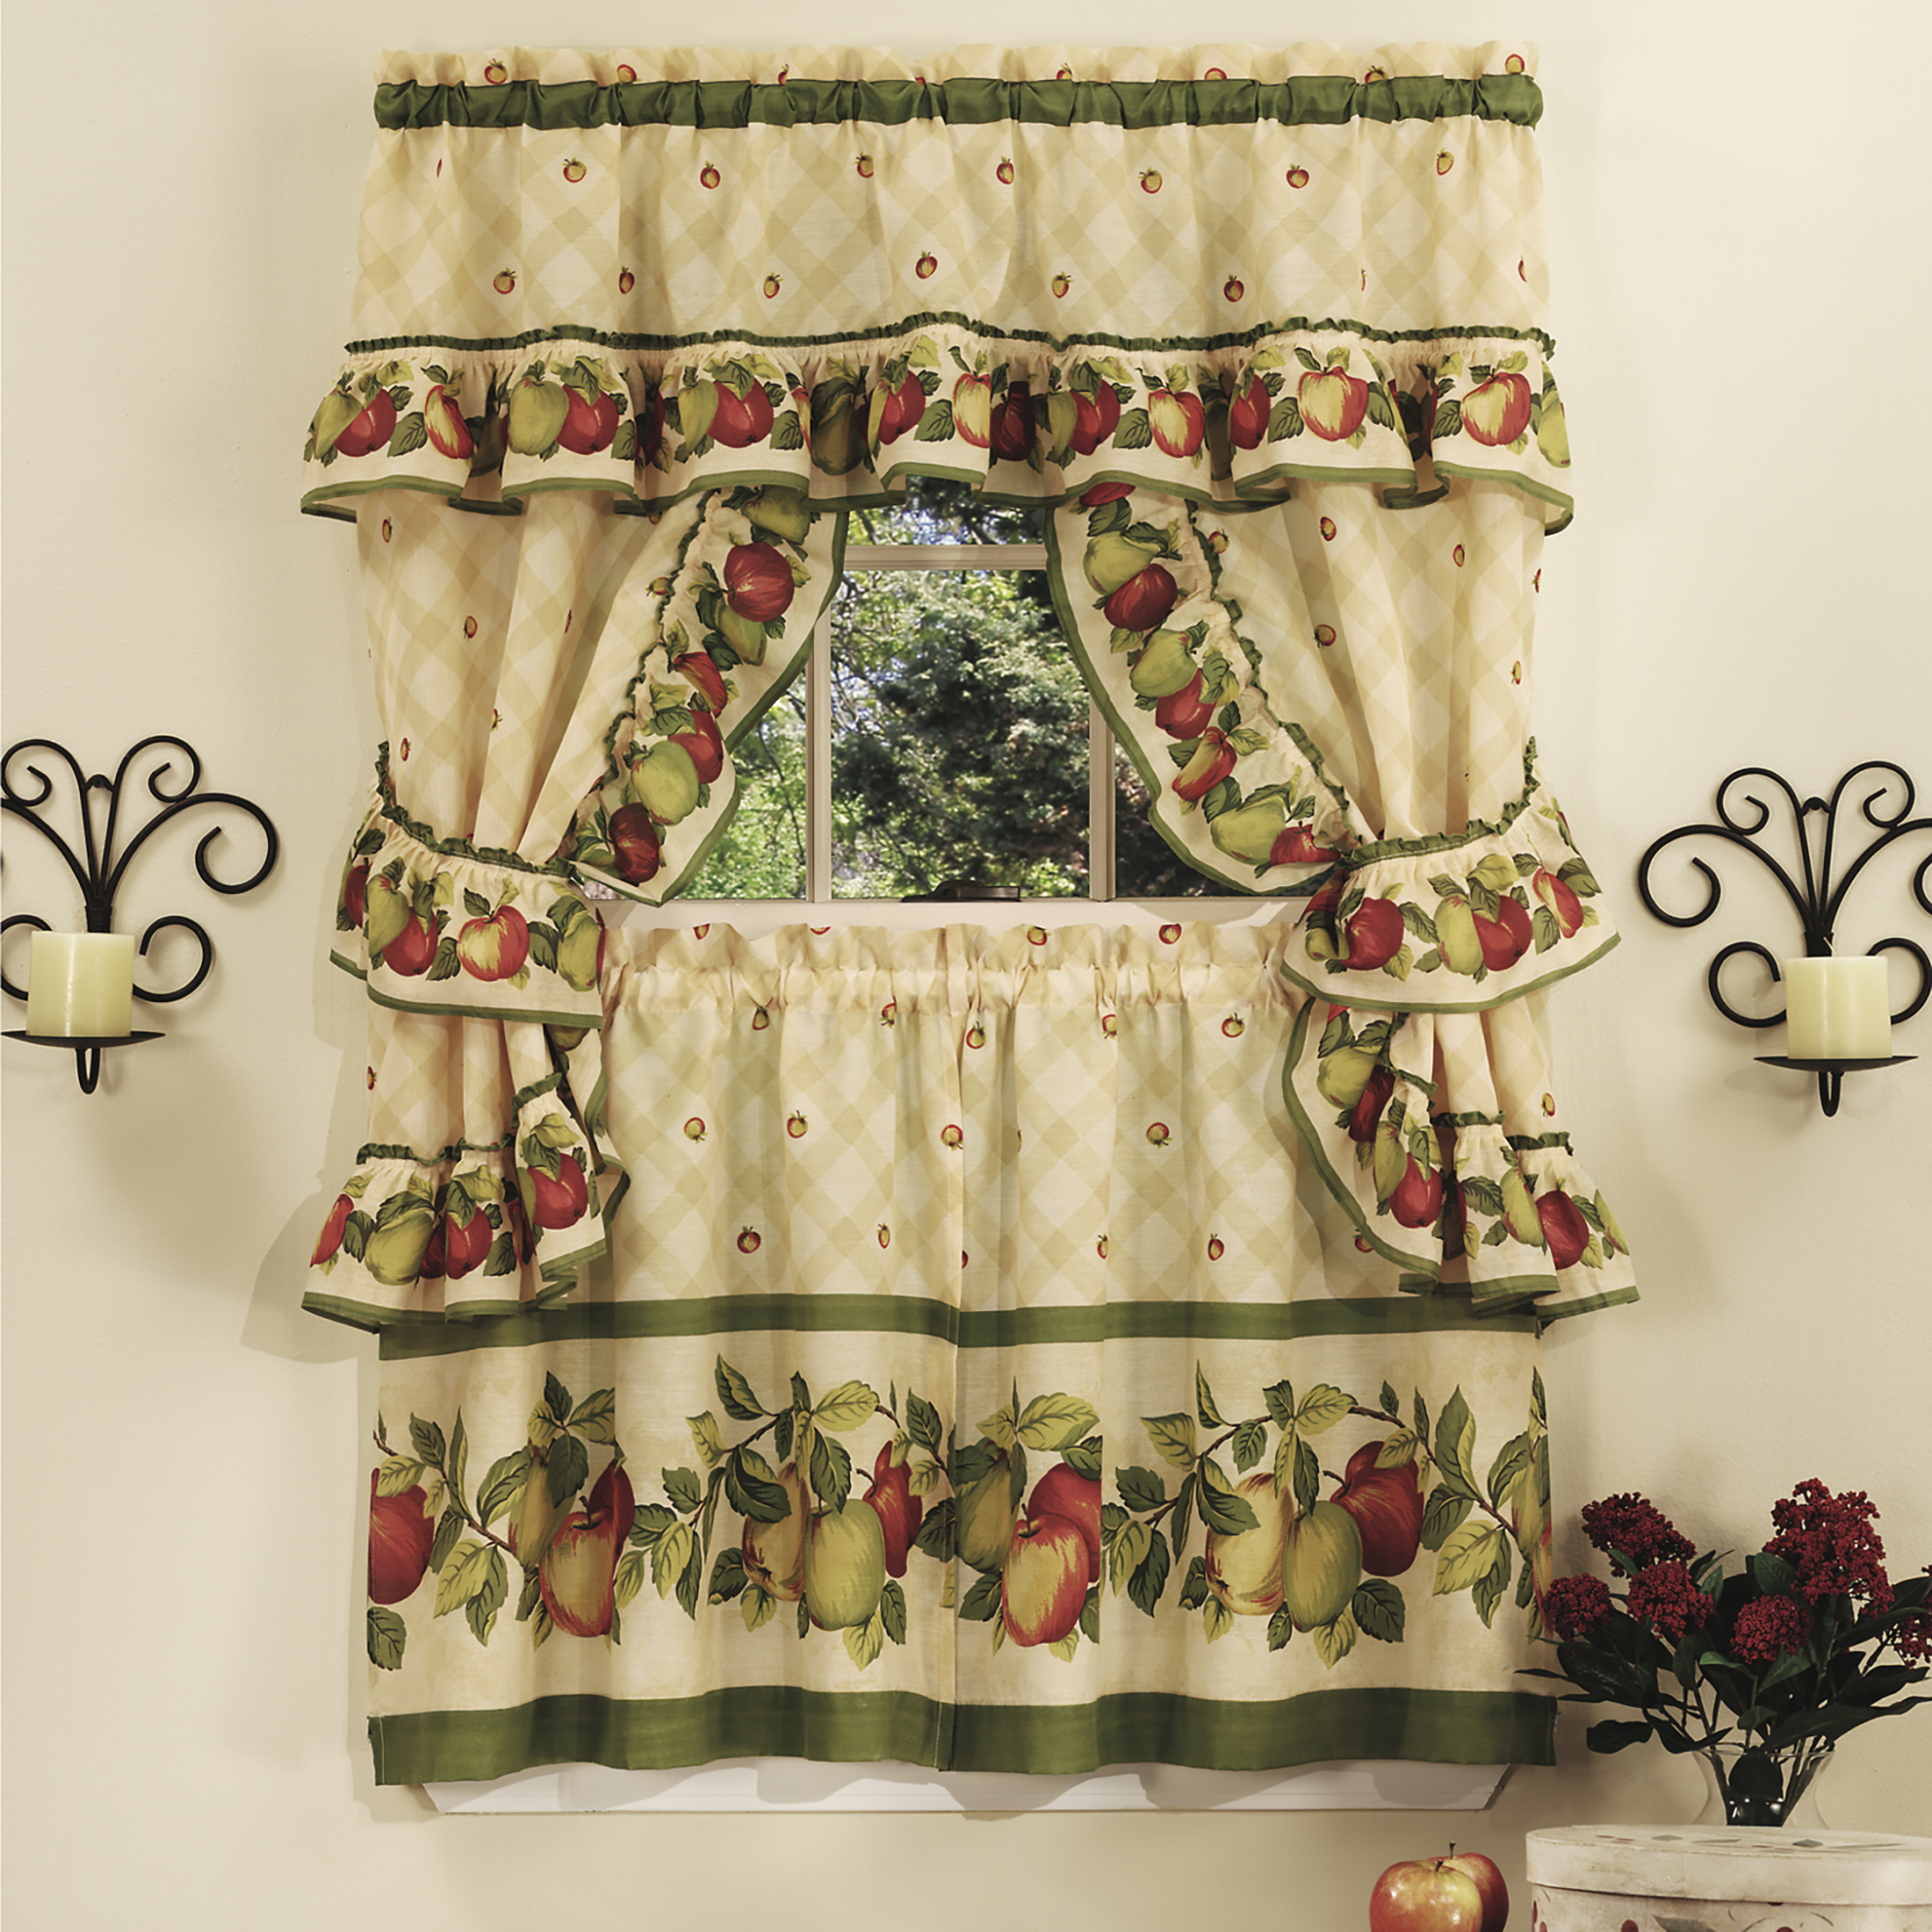 Details About 5pc Window Kitchen Curtain Cottage Set, Apple Vines, Tiers, Valance, Tiebacks Within 2020 Cottage Ivy Curtain Tiers (View 2 of 20)